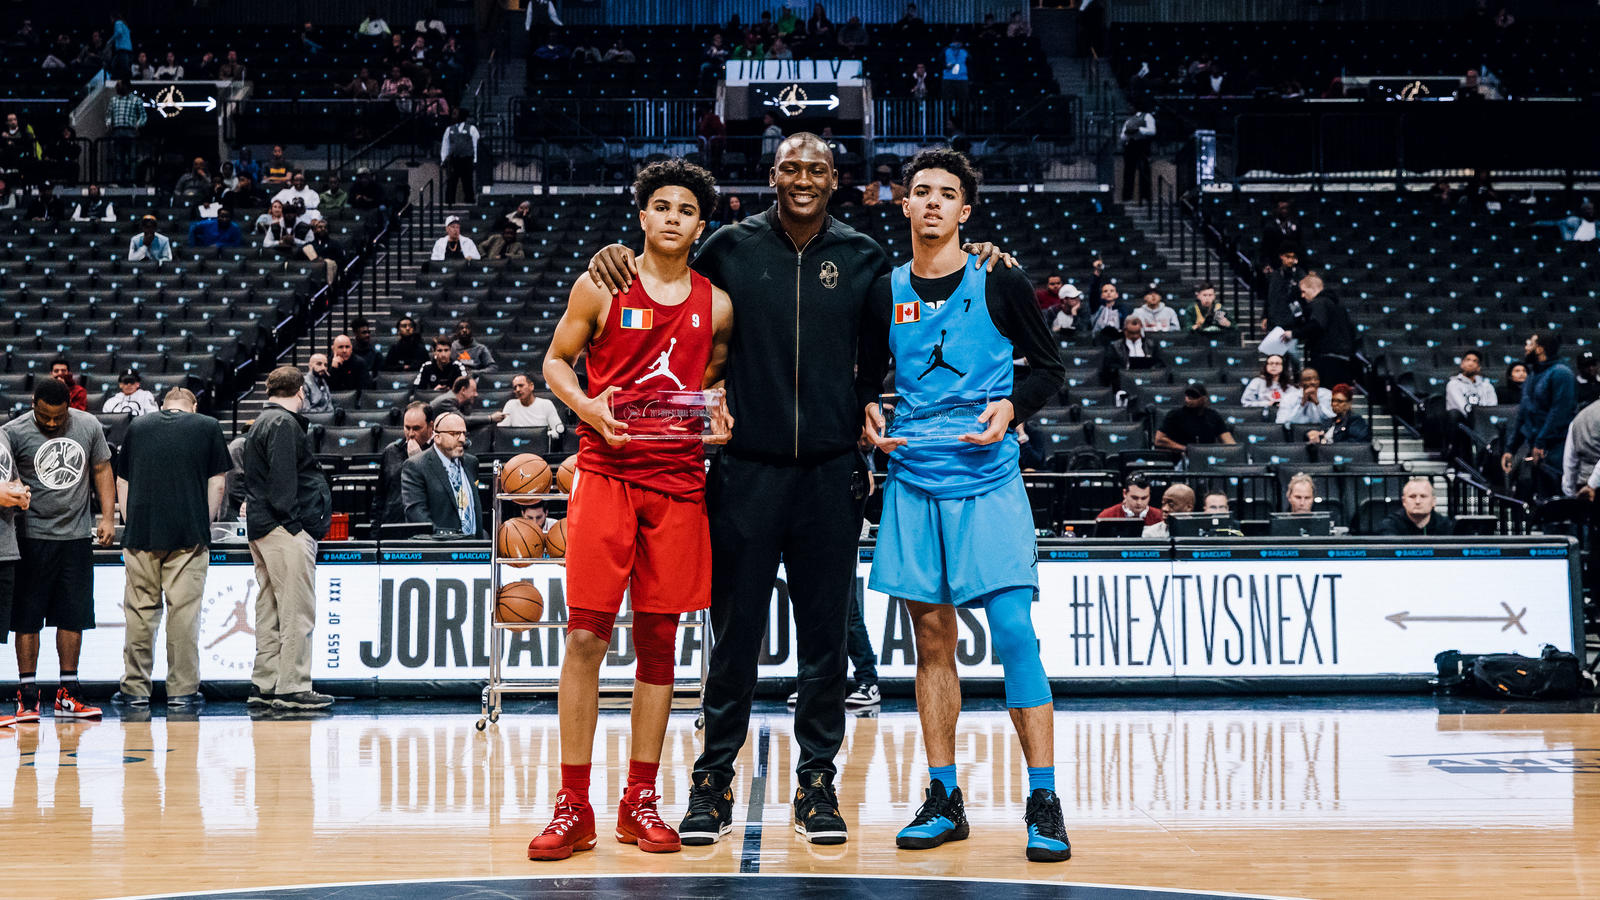 2017 JORDAN BRAND CLASSIC HOSTS NEXT GENERATION OF ELITE TALENT  15